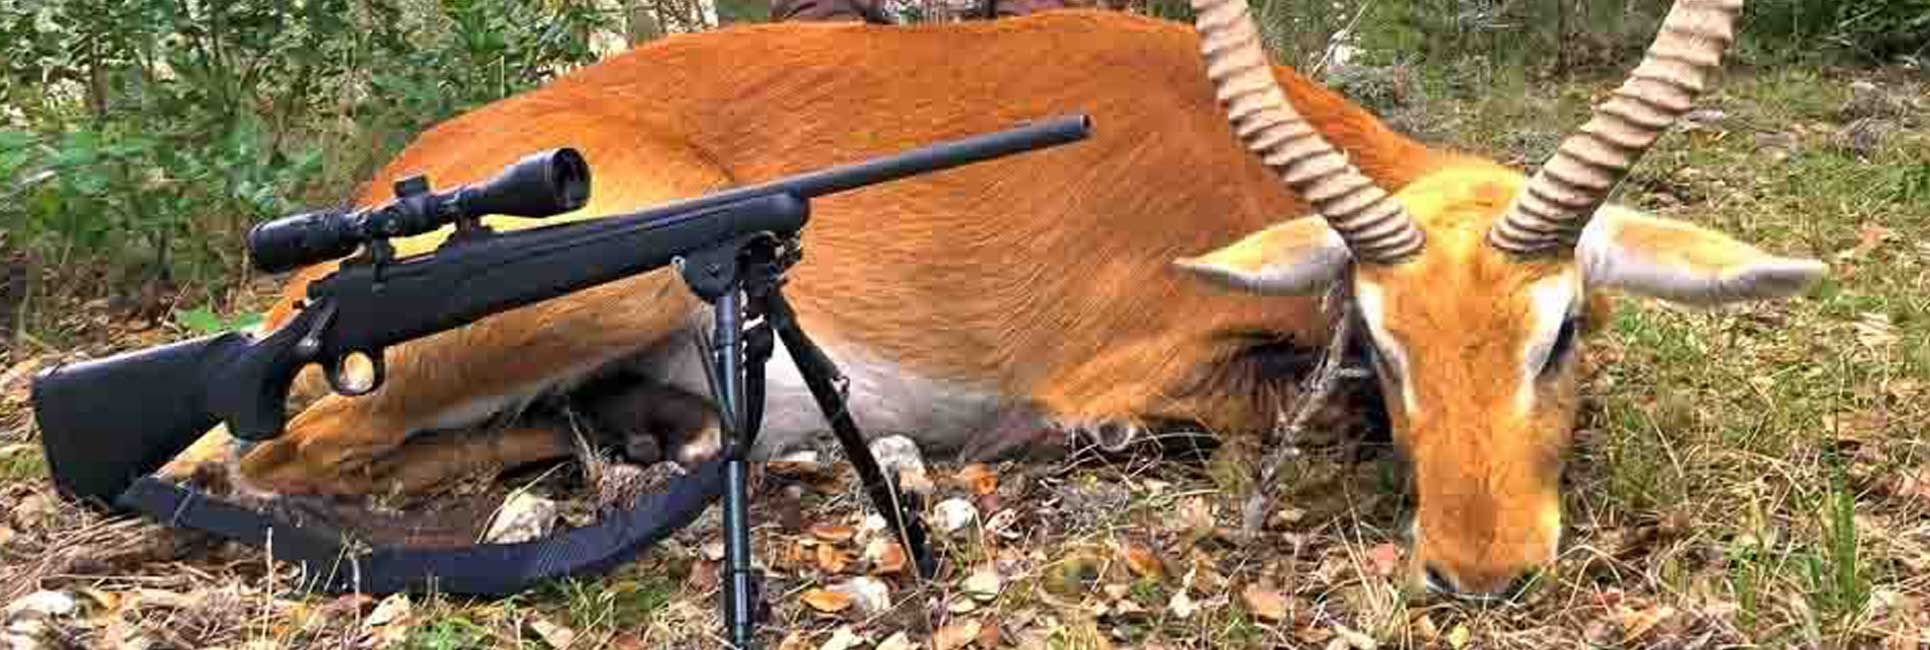 A large male Red Lechwe just harvested and on display with rifle sitting in front